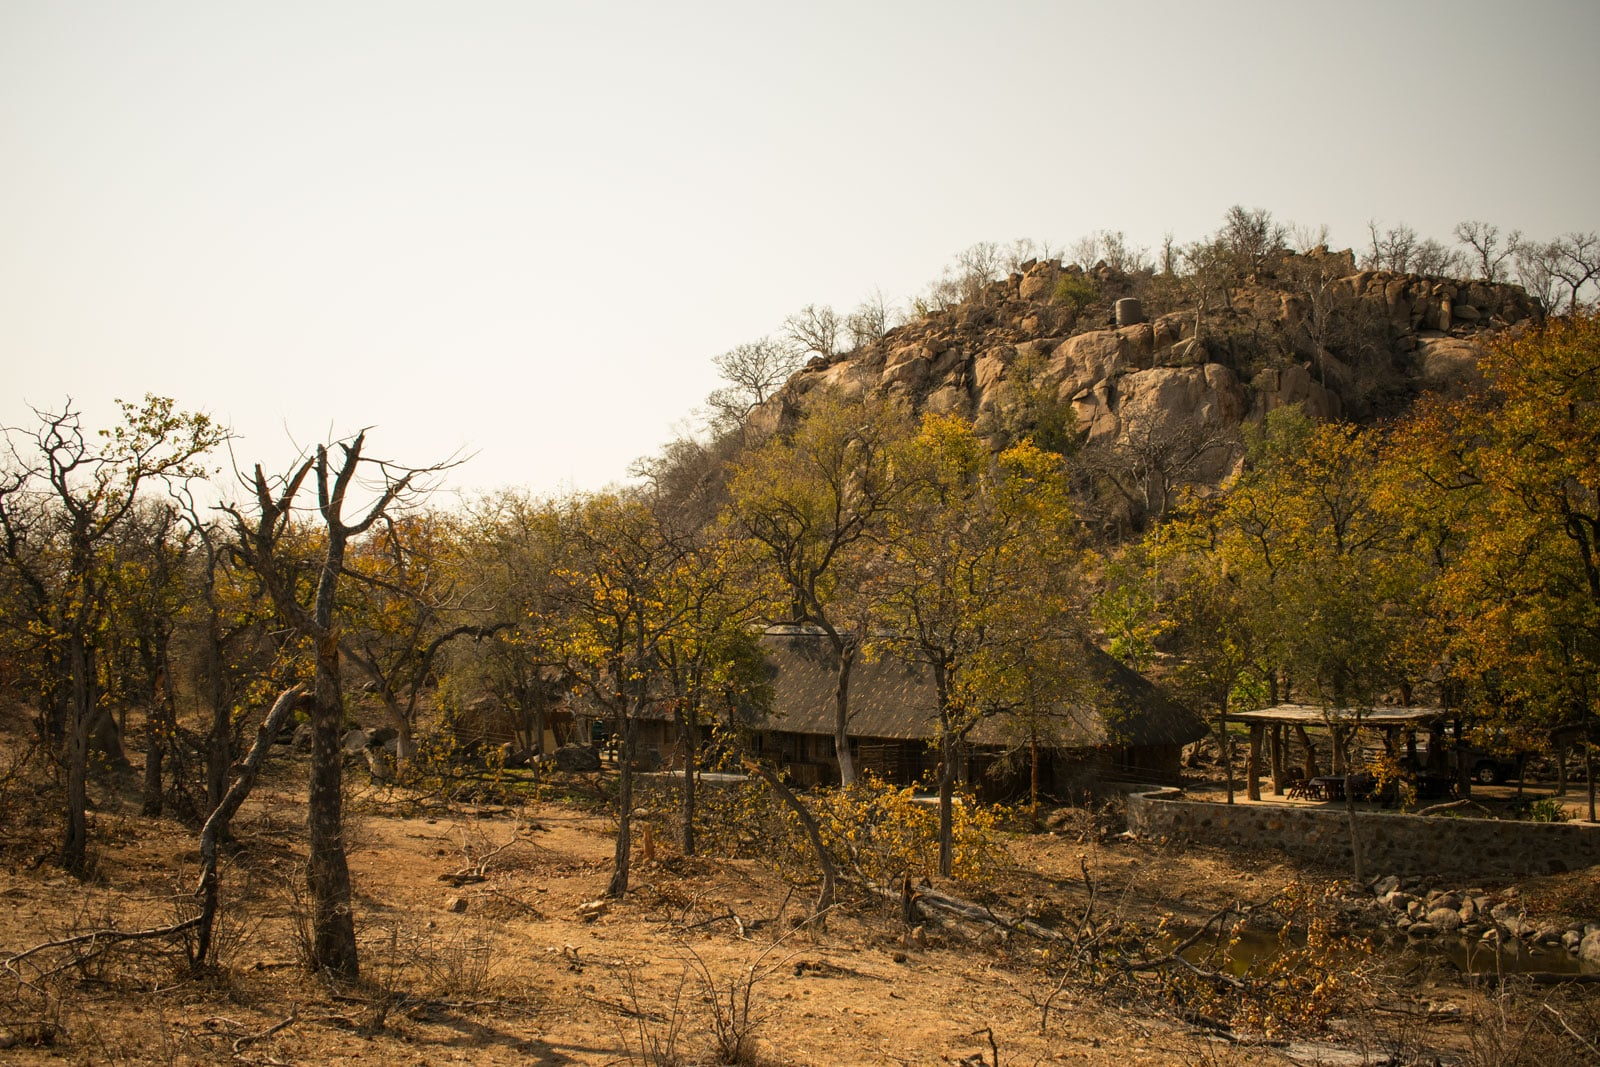 Chacma Bush Lodge is set below a rocky Balule outcrop